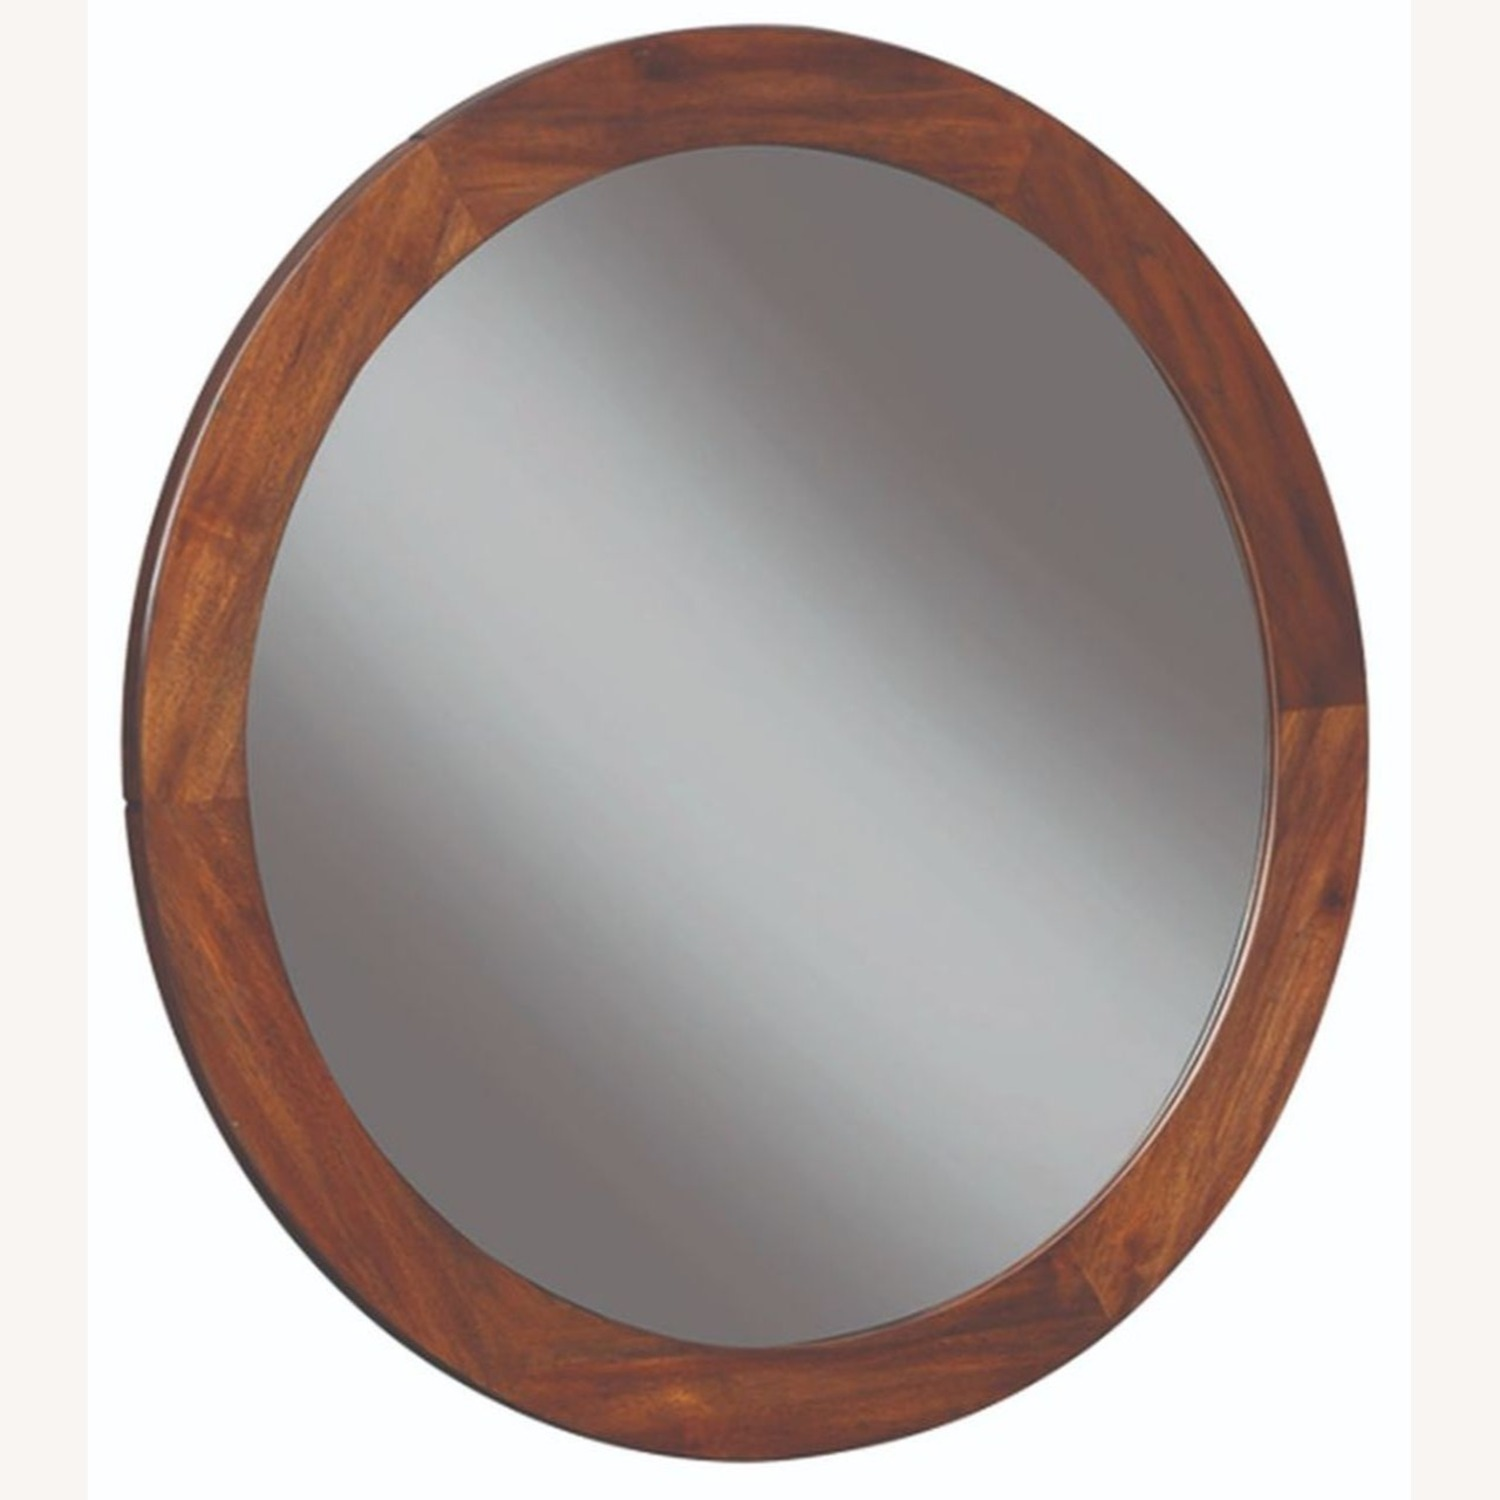 Mirror W/ Dessert Teak Wood Finish - image-1